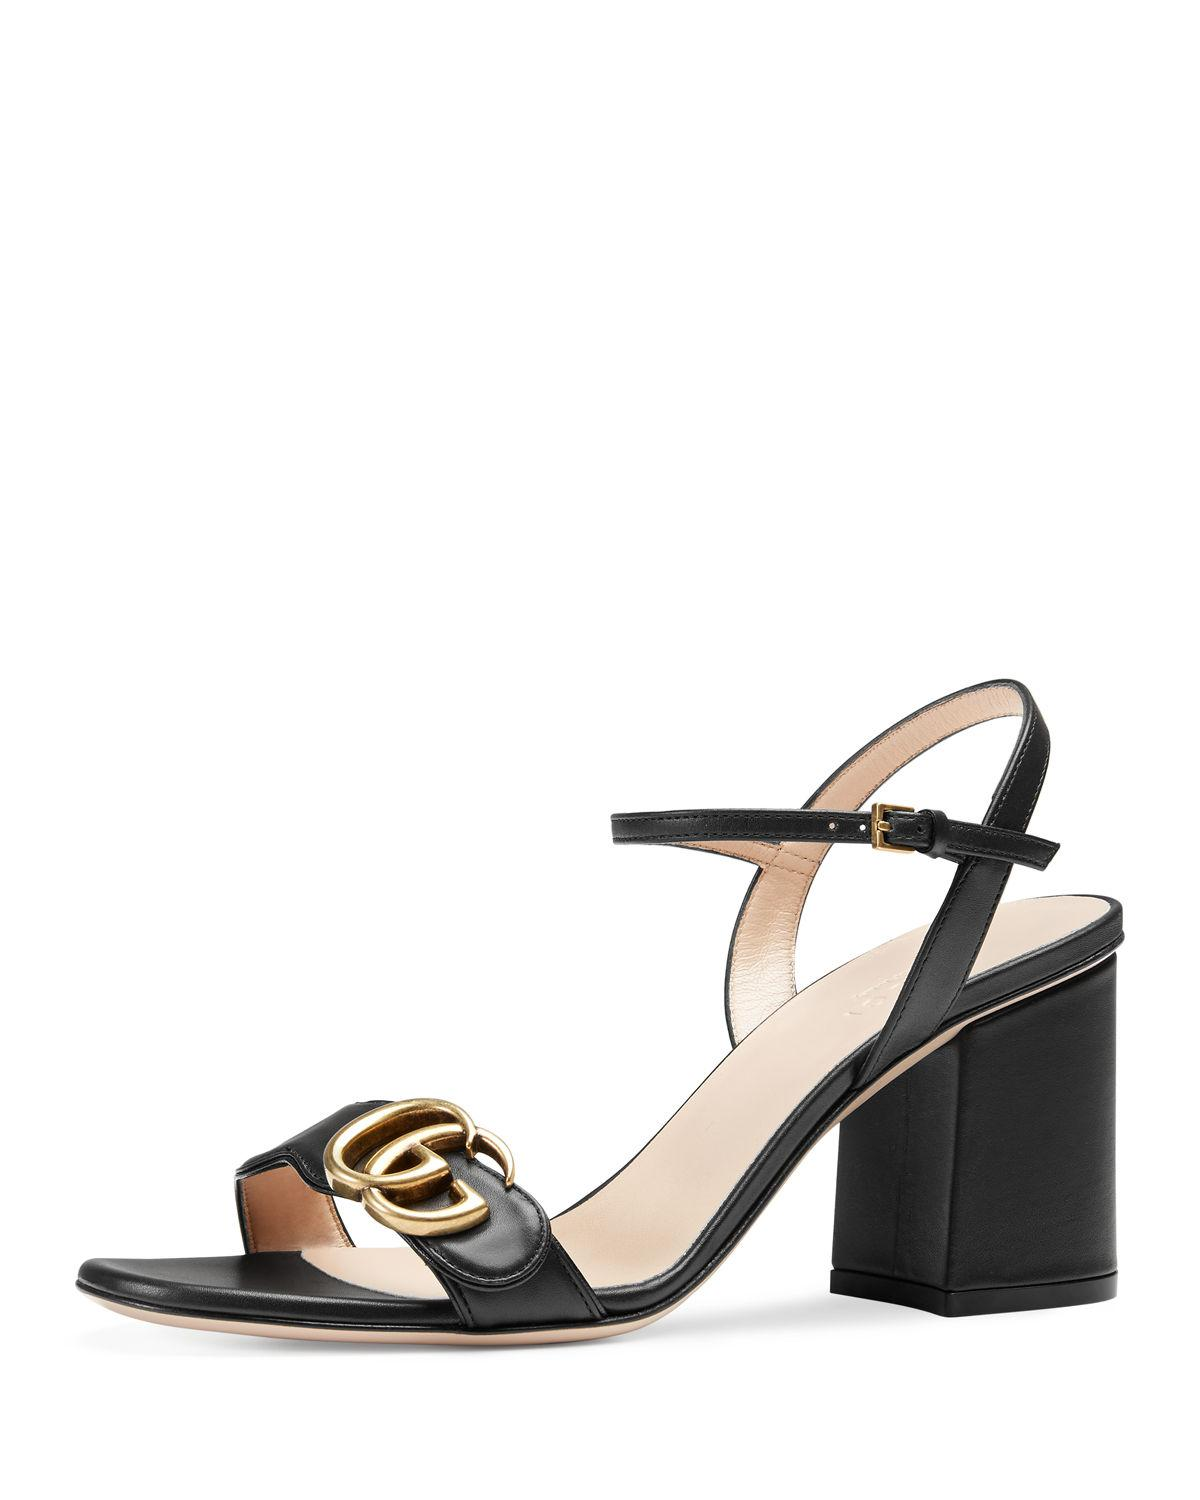 4d245e978 Gucci Marmont Leather GG Block-heel Sandals in Black - Lyst